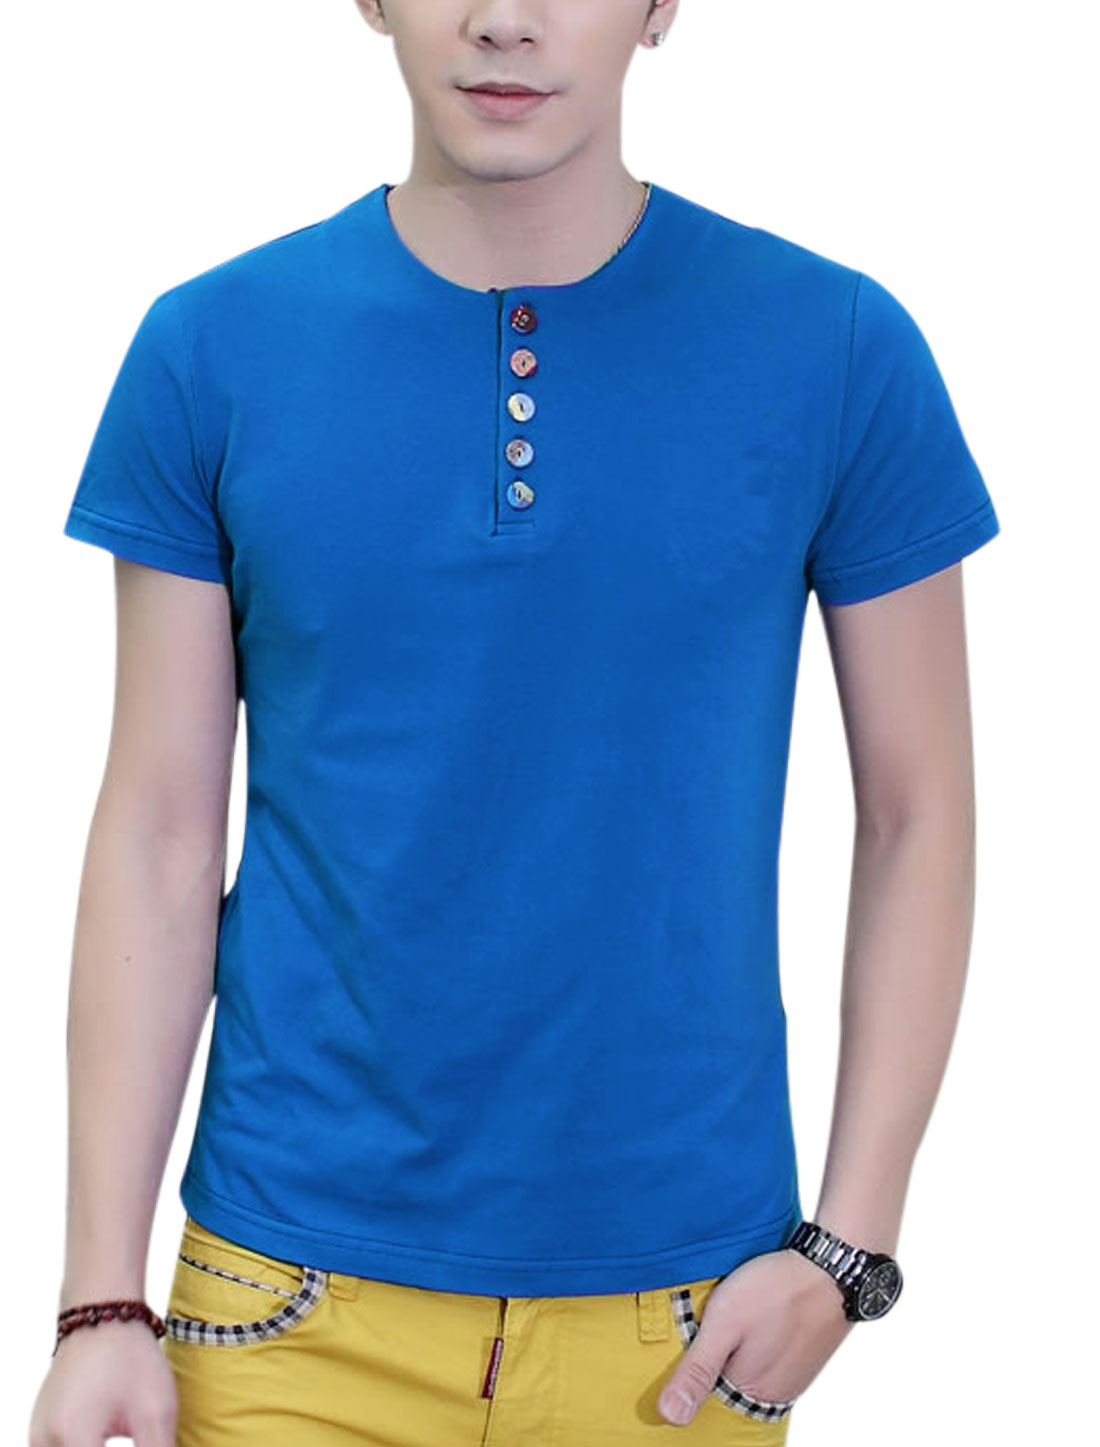 Round Neck Short Sleeve 1/4 Placket Tee for Men Royal Blue M